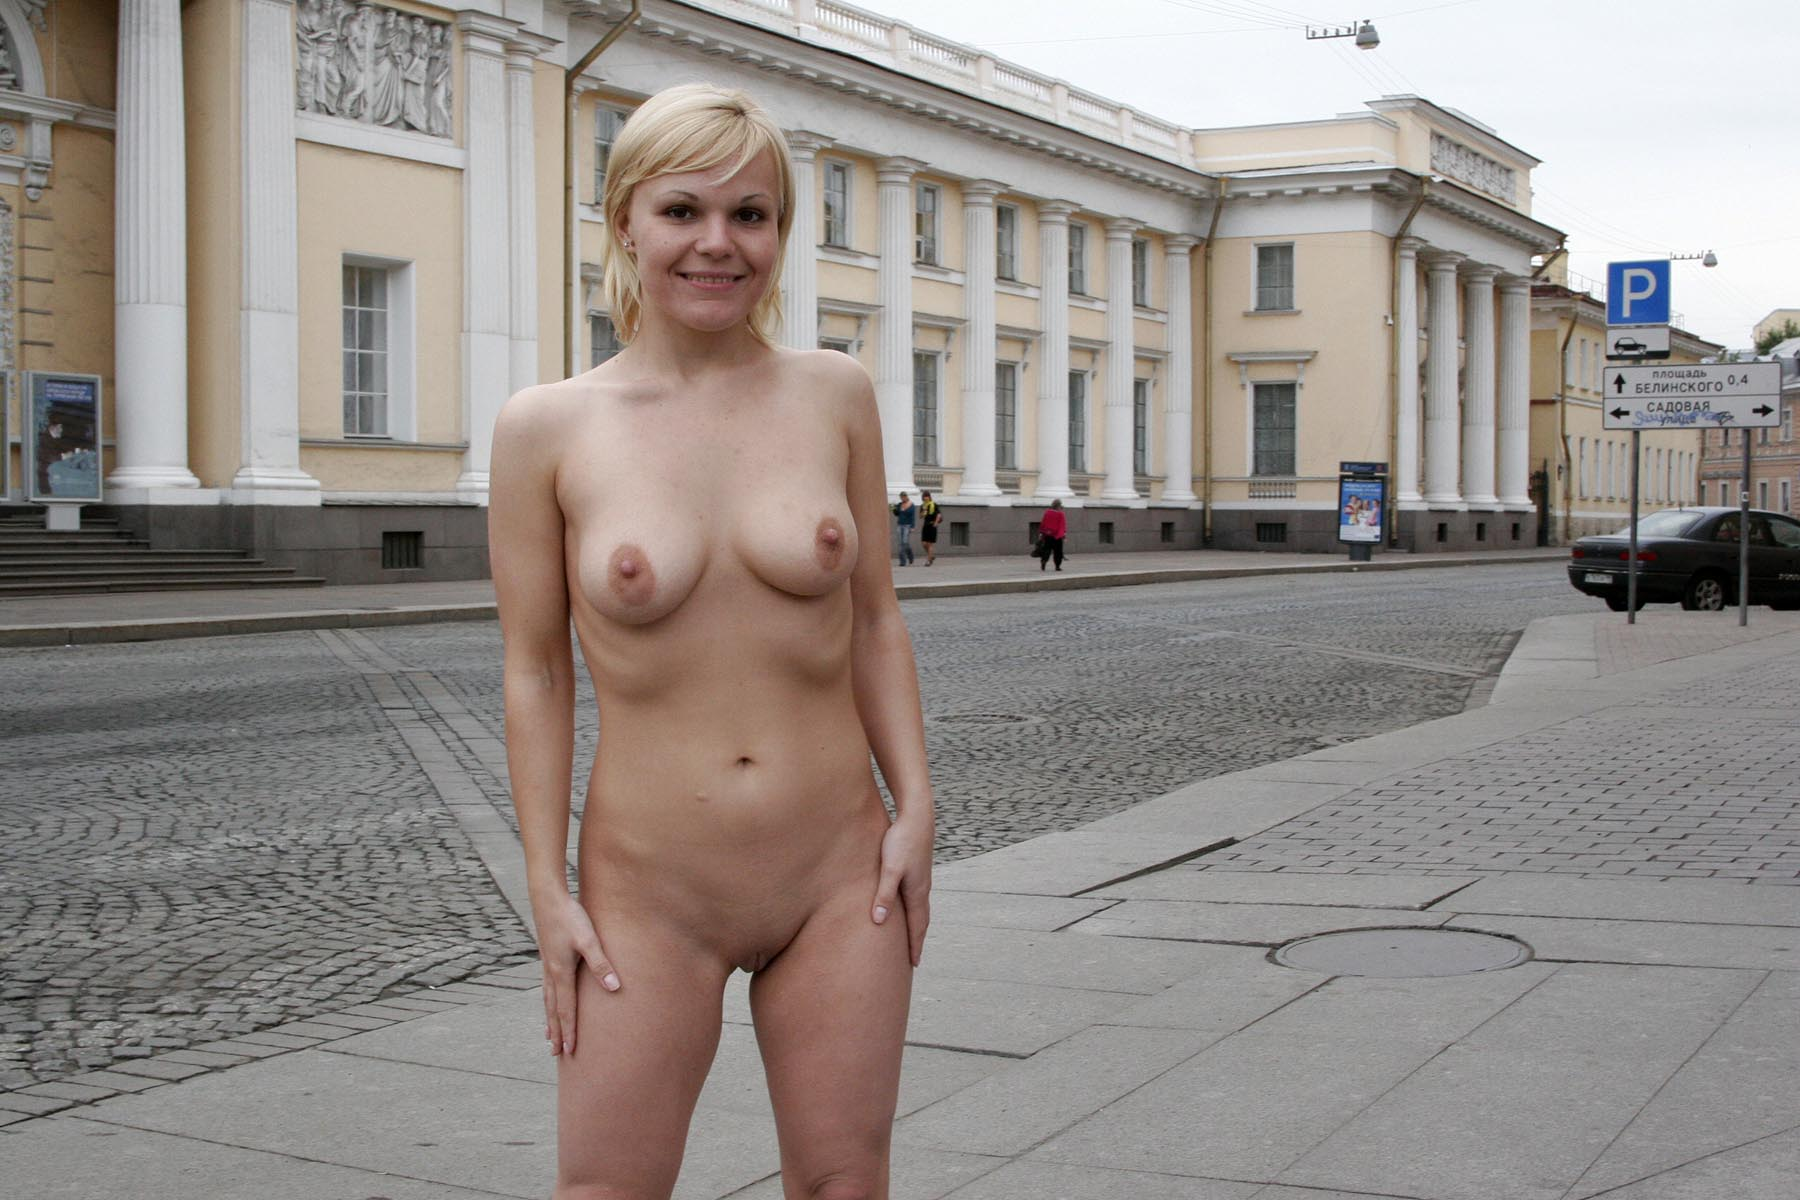 Short hair sexy blondes 2852 confirm. happens